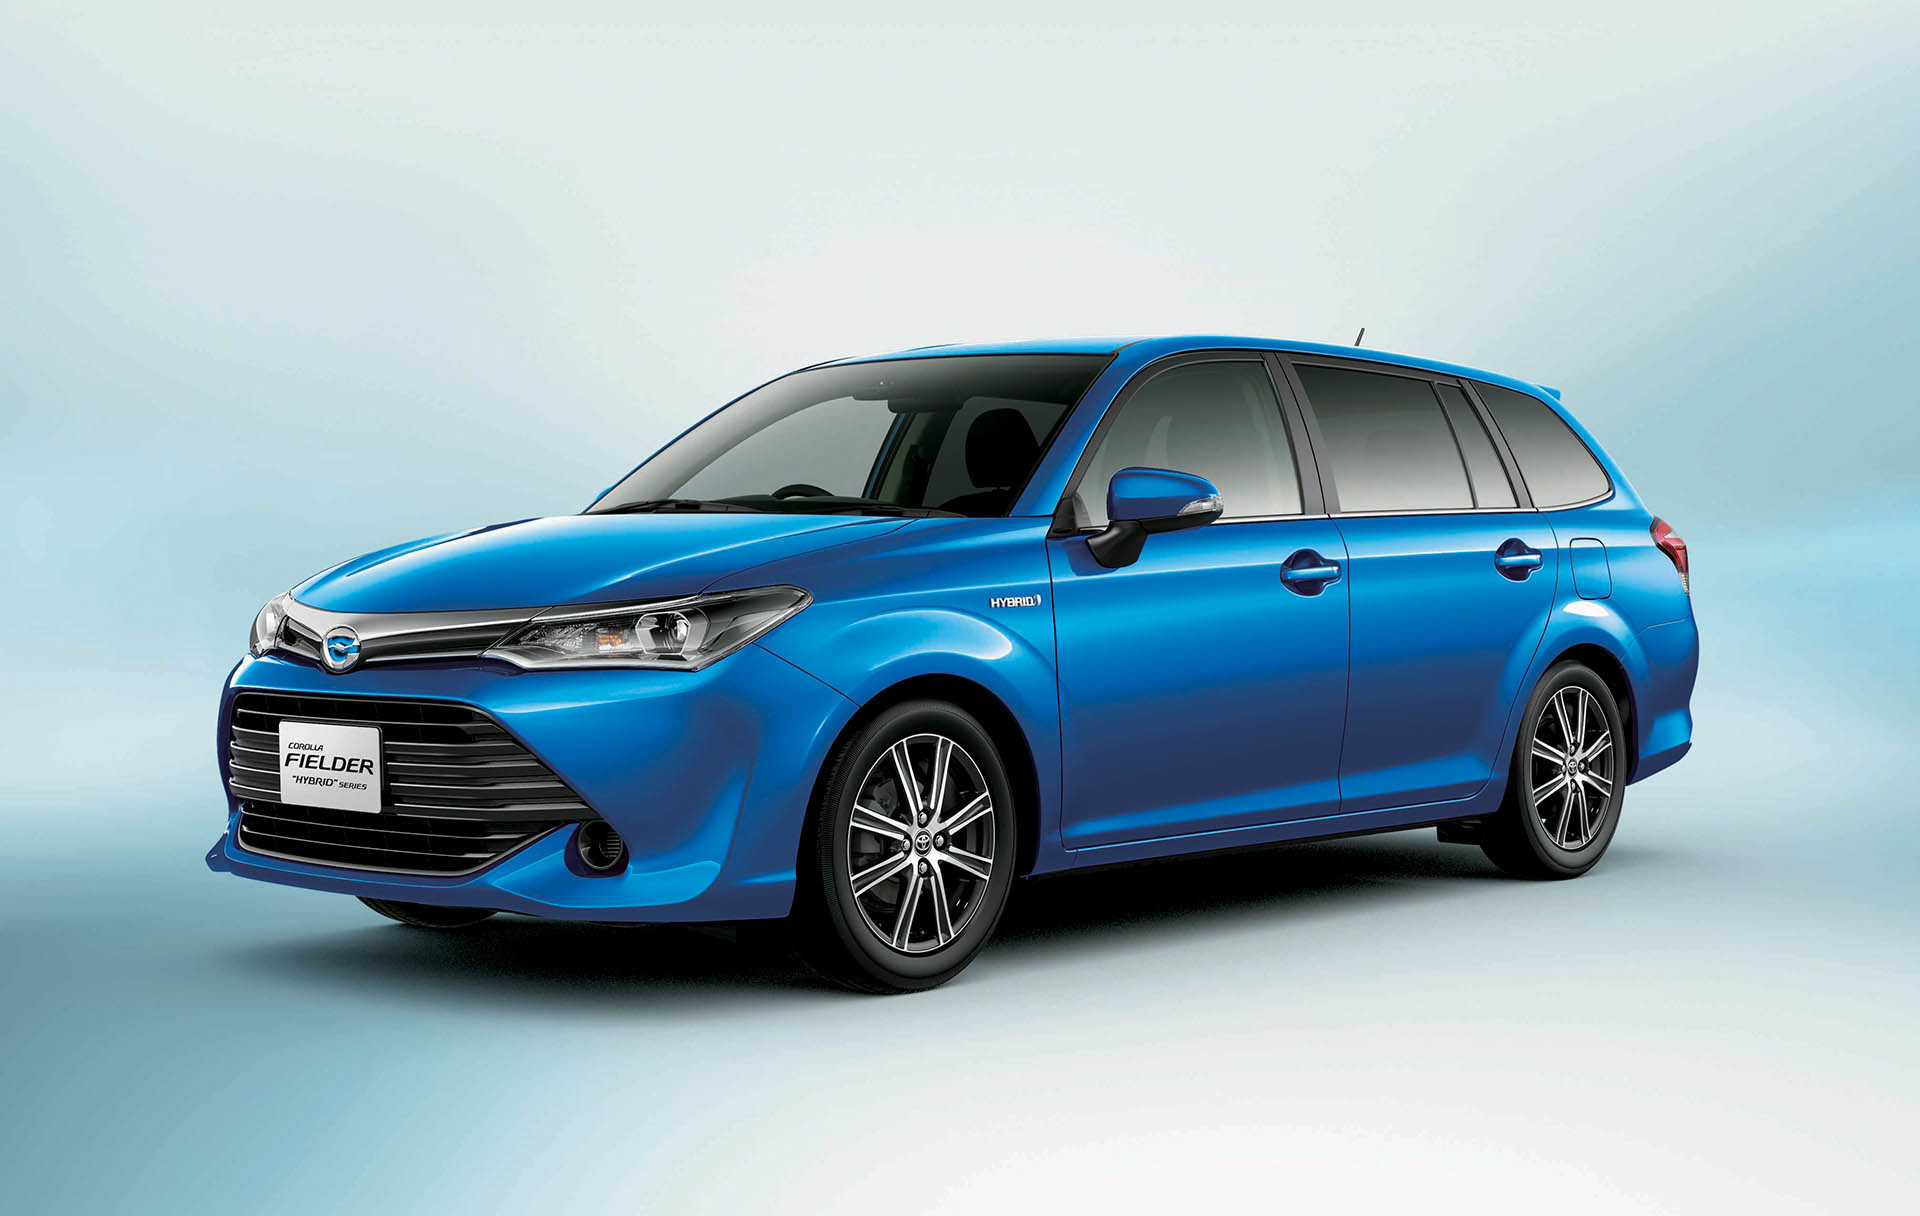 2017 Toyota Highlander Hybrid SUV | See where your limits ...